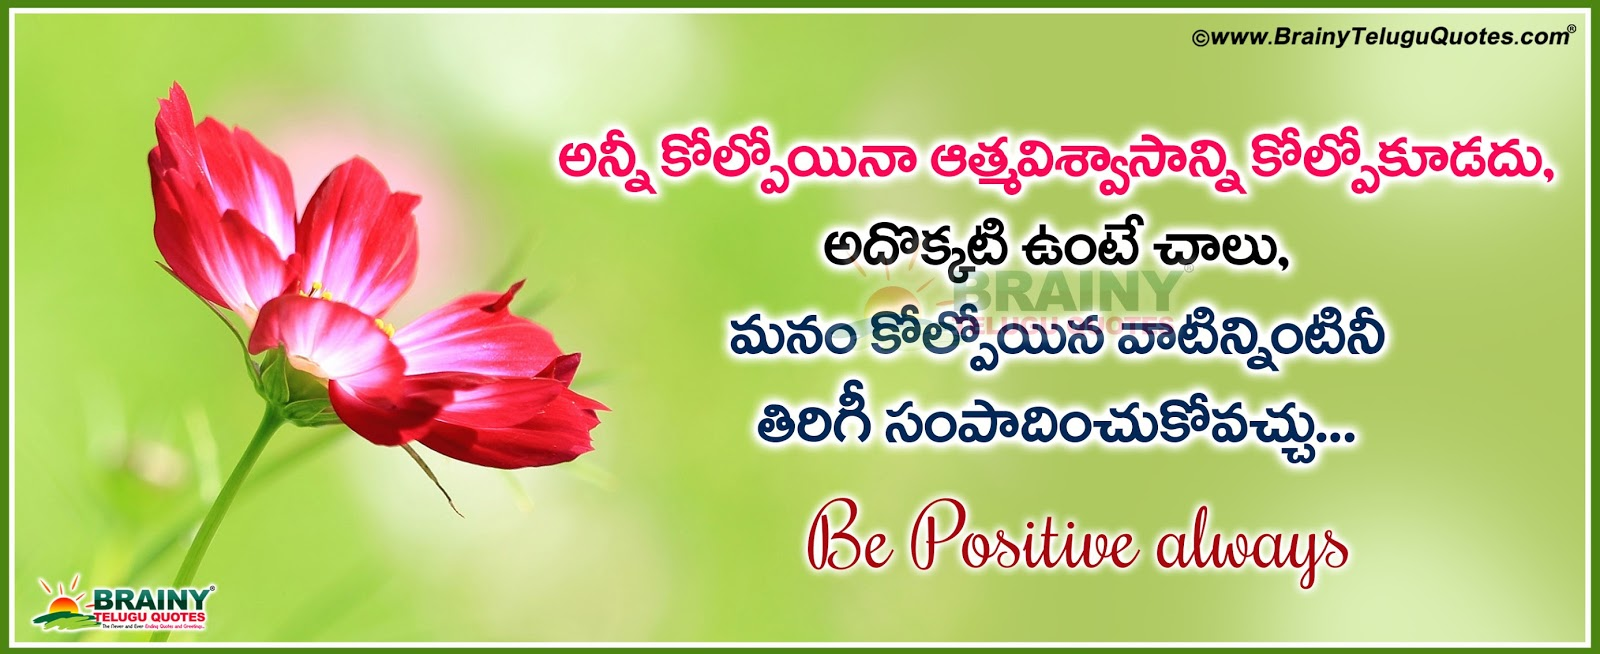 Snap Facebook Quotes About Life In Telugu Image Quotes At Photos